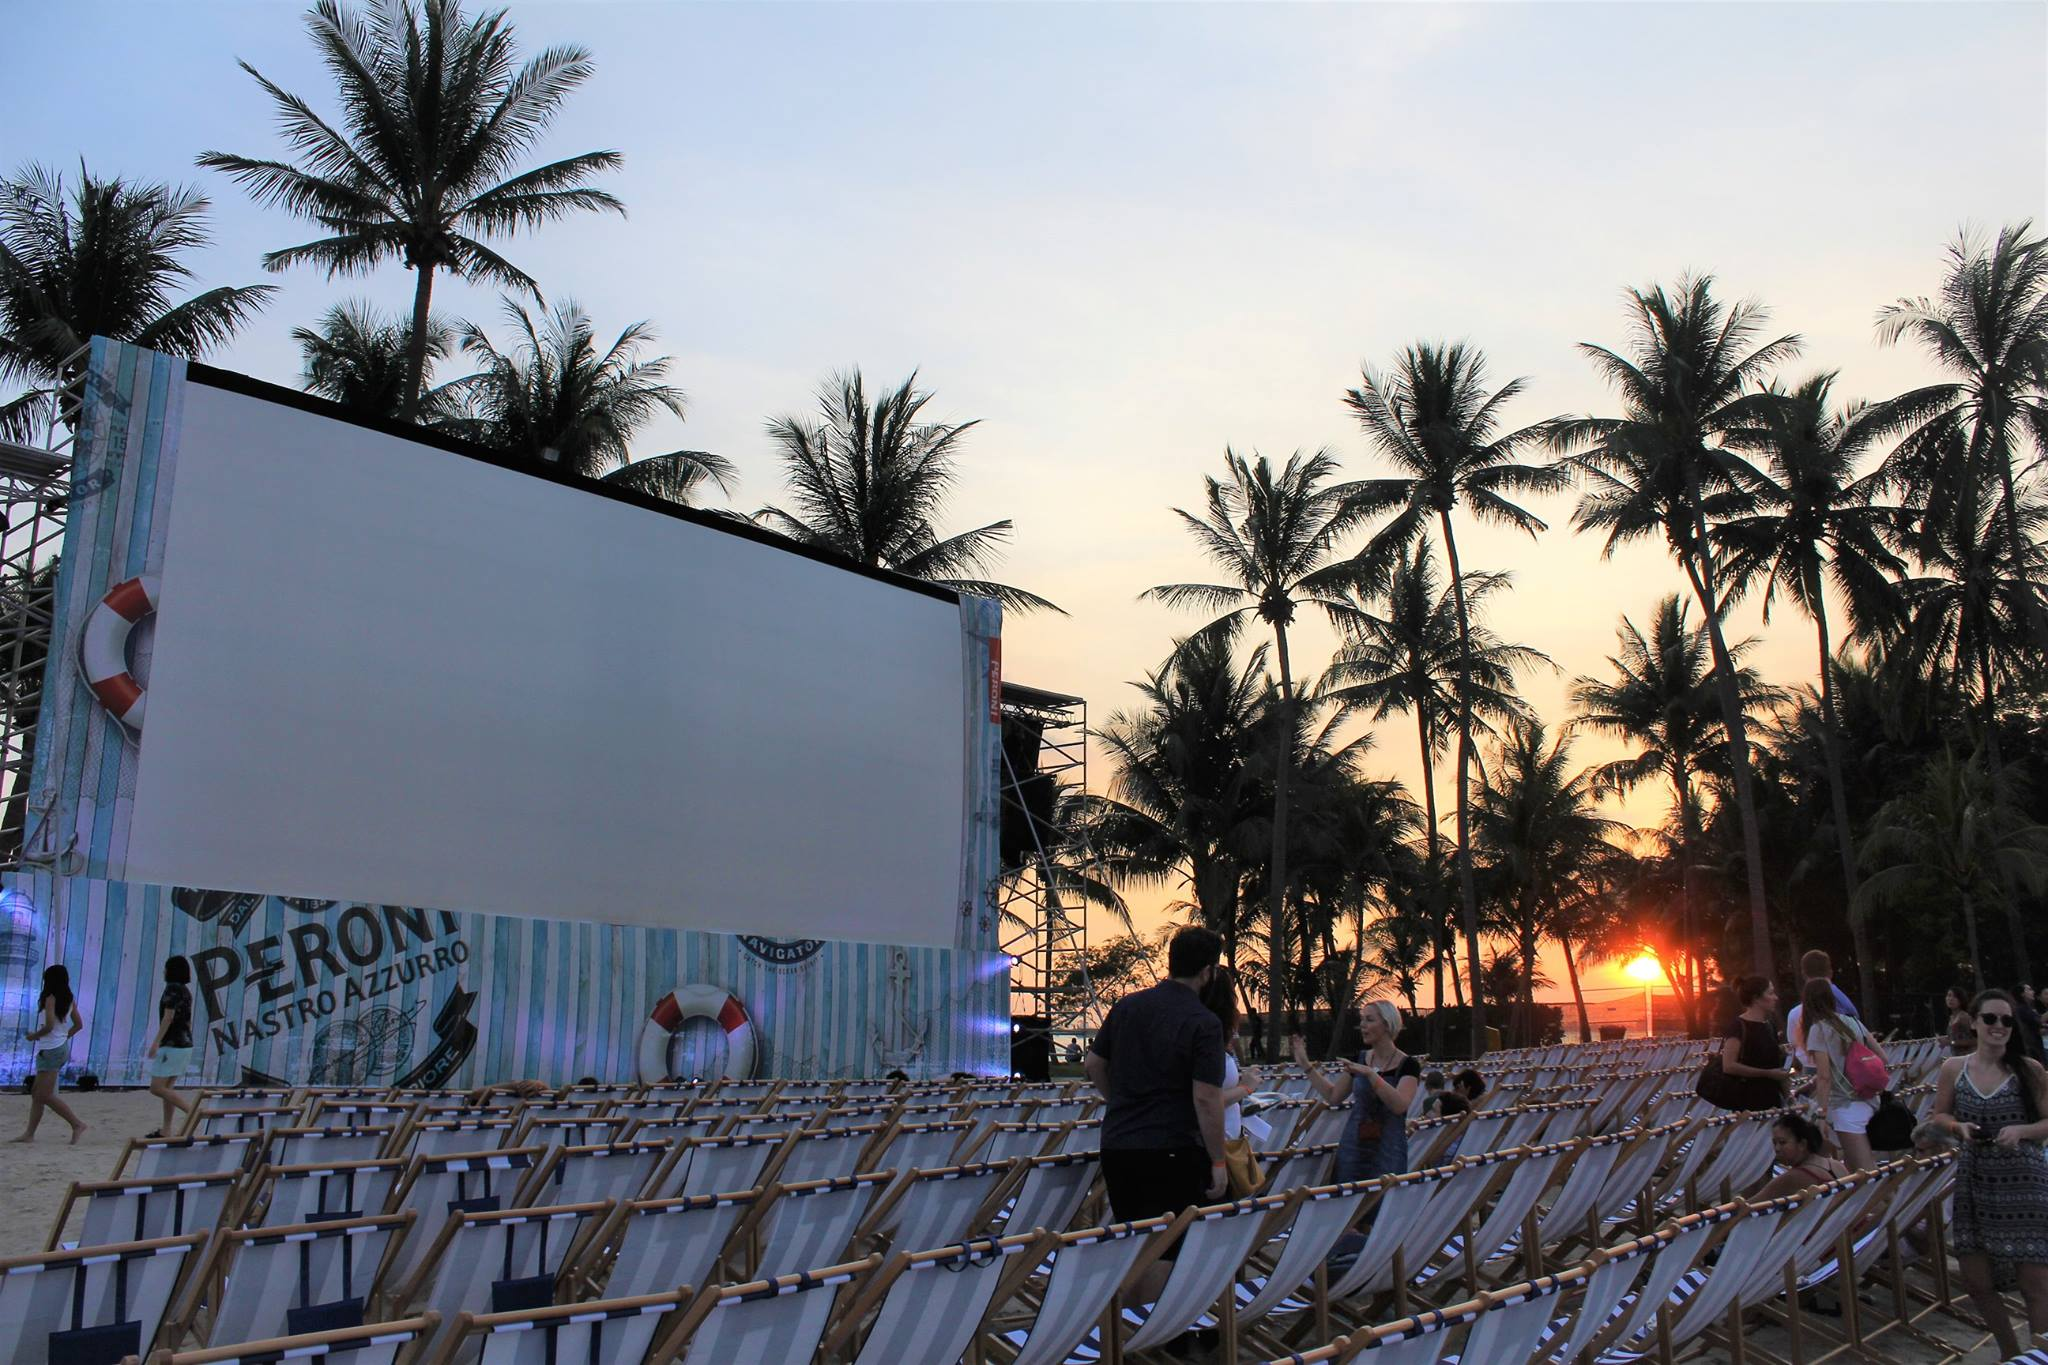 Free movie screenings that you can watch on the weekends, Singapore